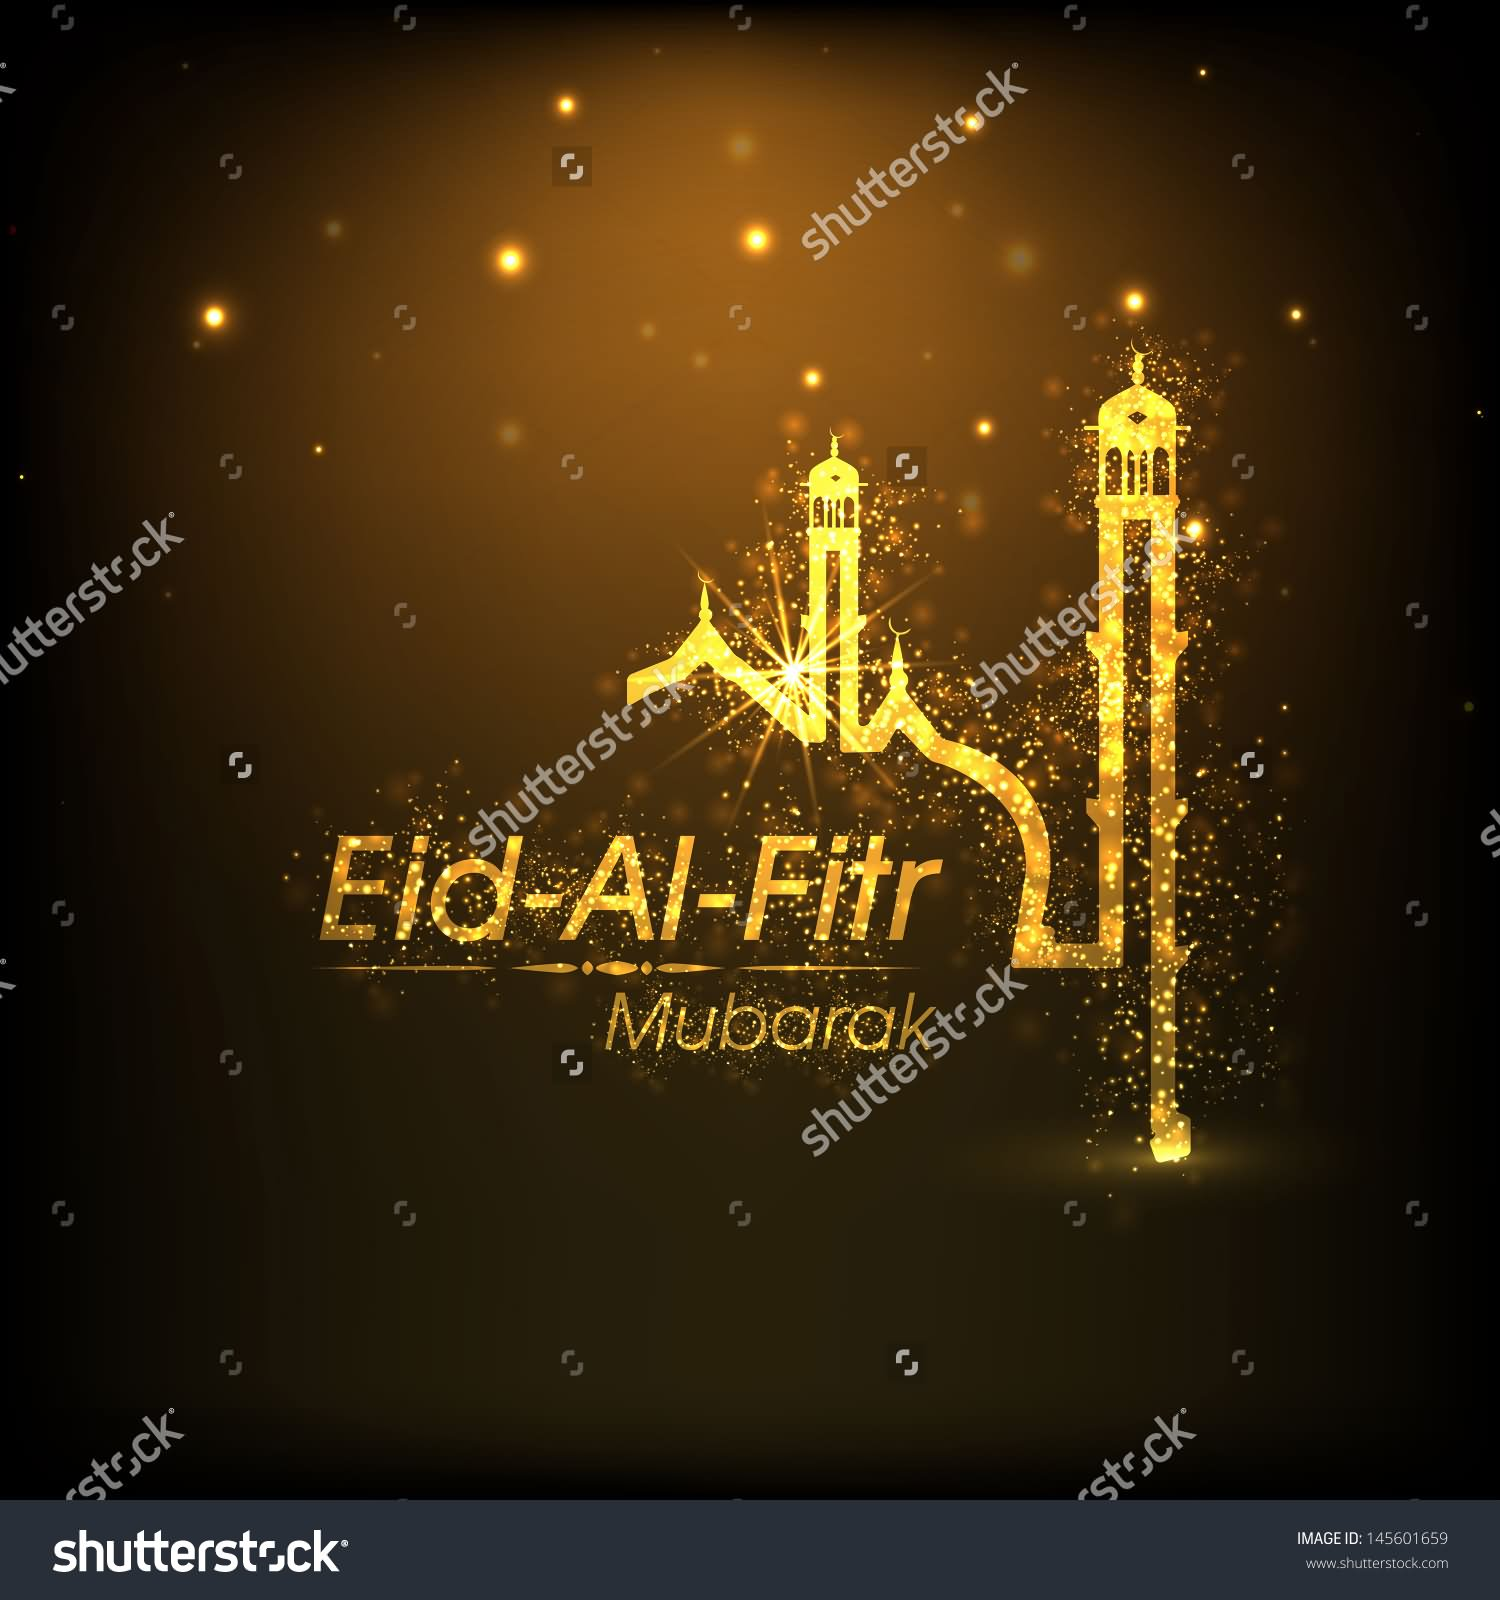 Eid ul fitr mubarak 2016 greetings picture newsrescue the views expressed in this article belong to the author and do not necessarily reflect the editorial policy of newsrescue m4hsunfo